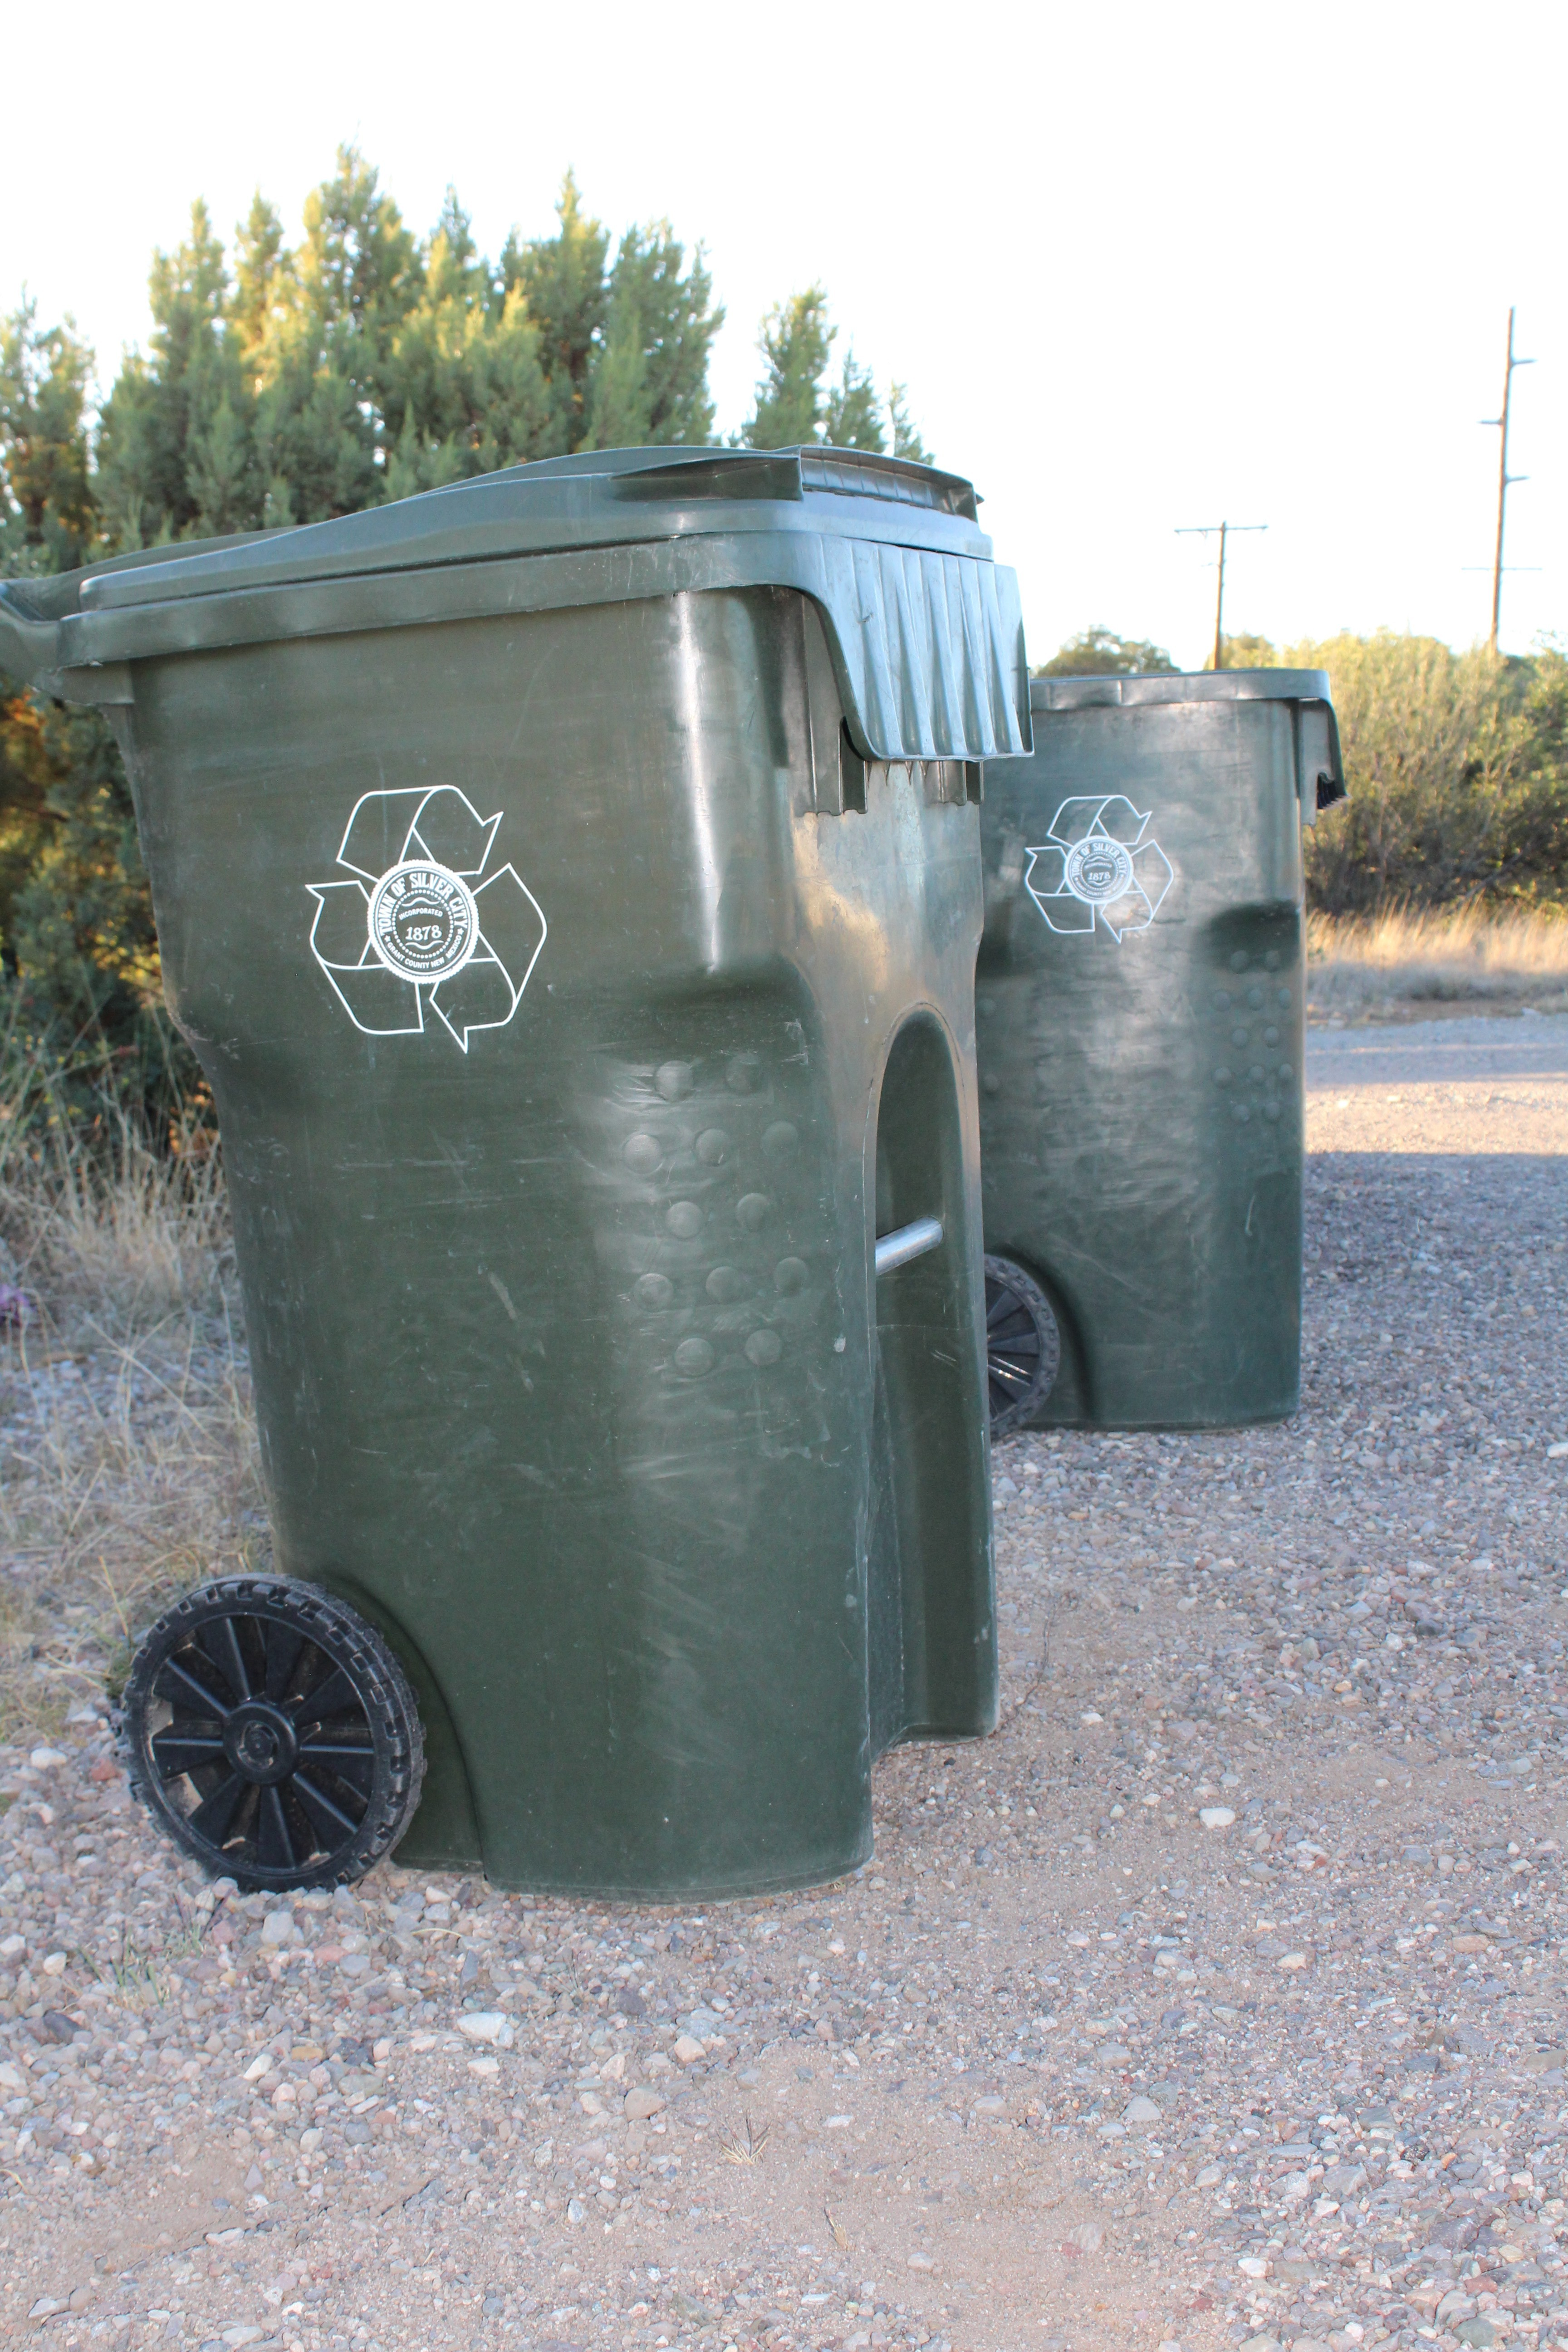 TownCouncilRecycling